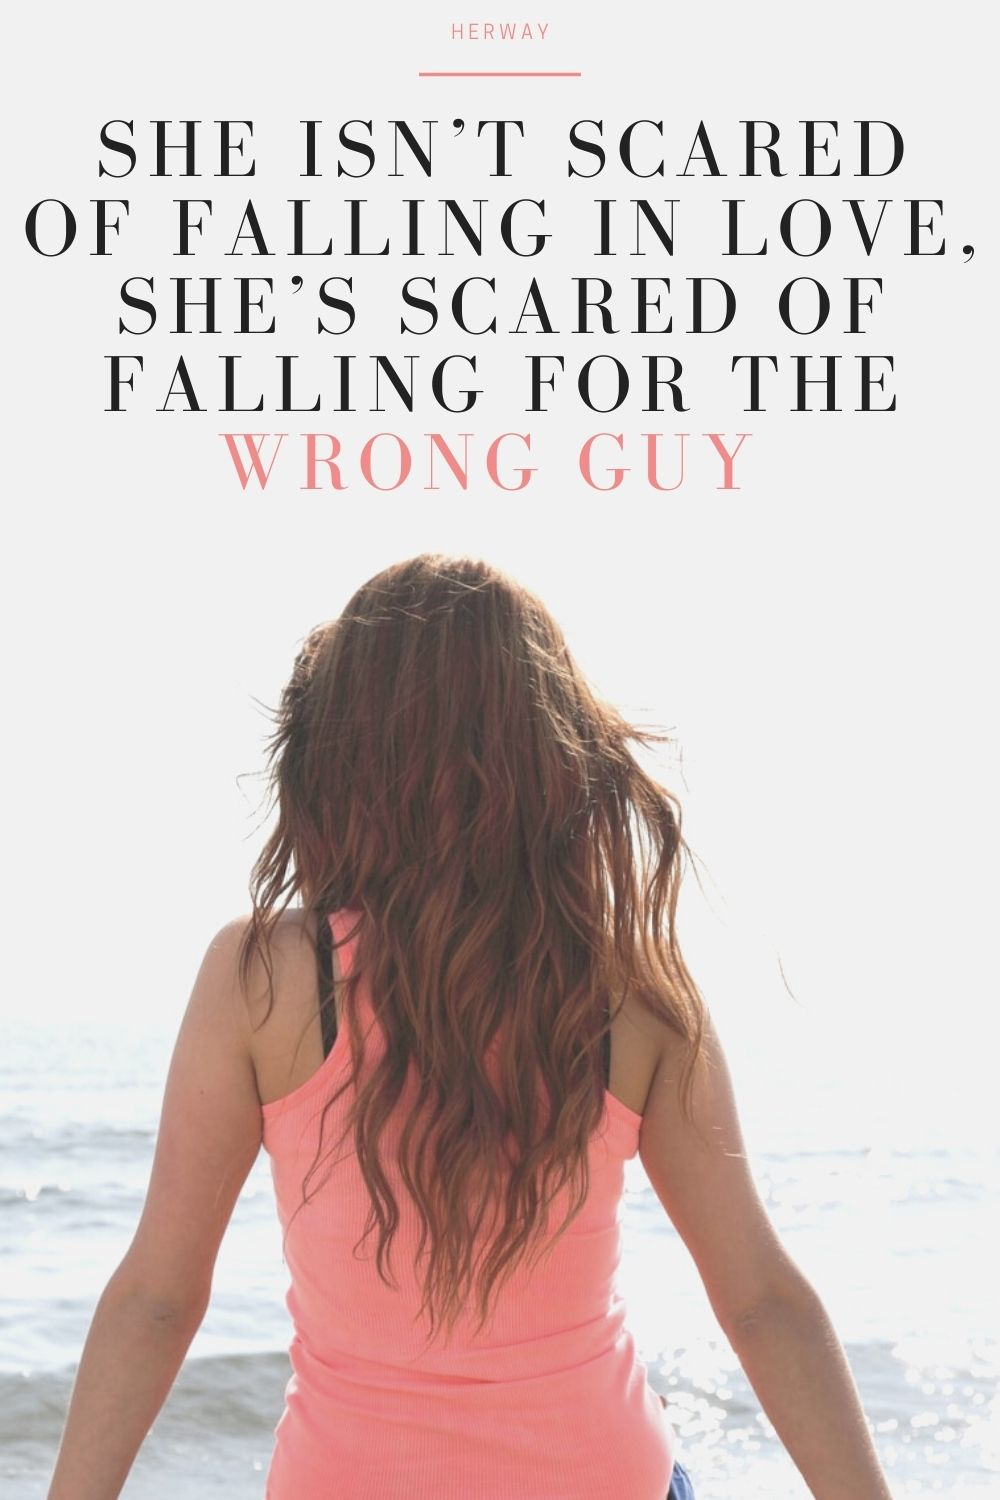 She Isn't Scared Of Falling In Love, She's Scared Of Falling For The Wrong Guy